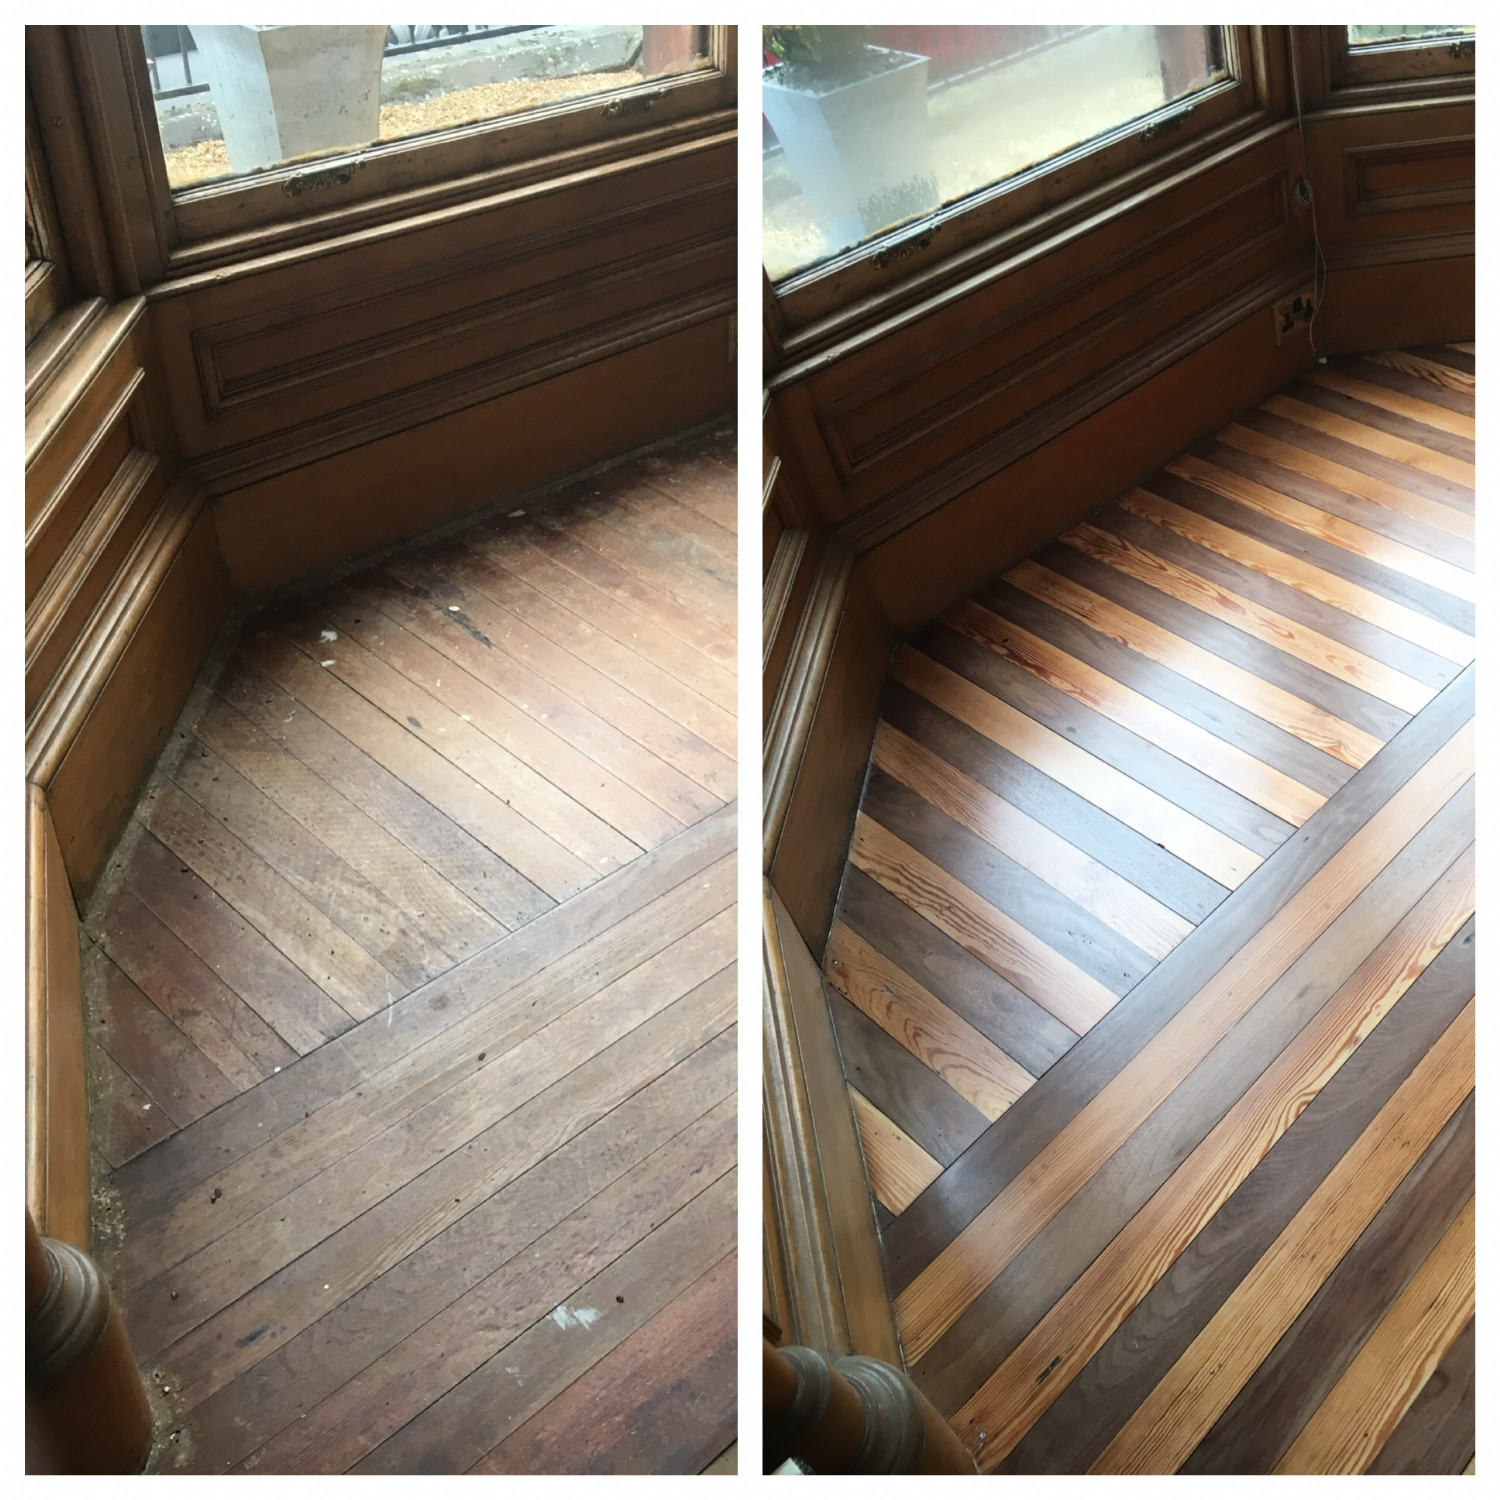 Hardwood Floor Refinishing Littleton Co Of Wood Floor Sanding In Falkirk by Avoca Floorcare for Wood Floor Sanding Falkirk A· Wood Floor Sanding Falkirk